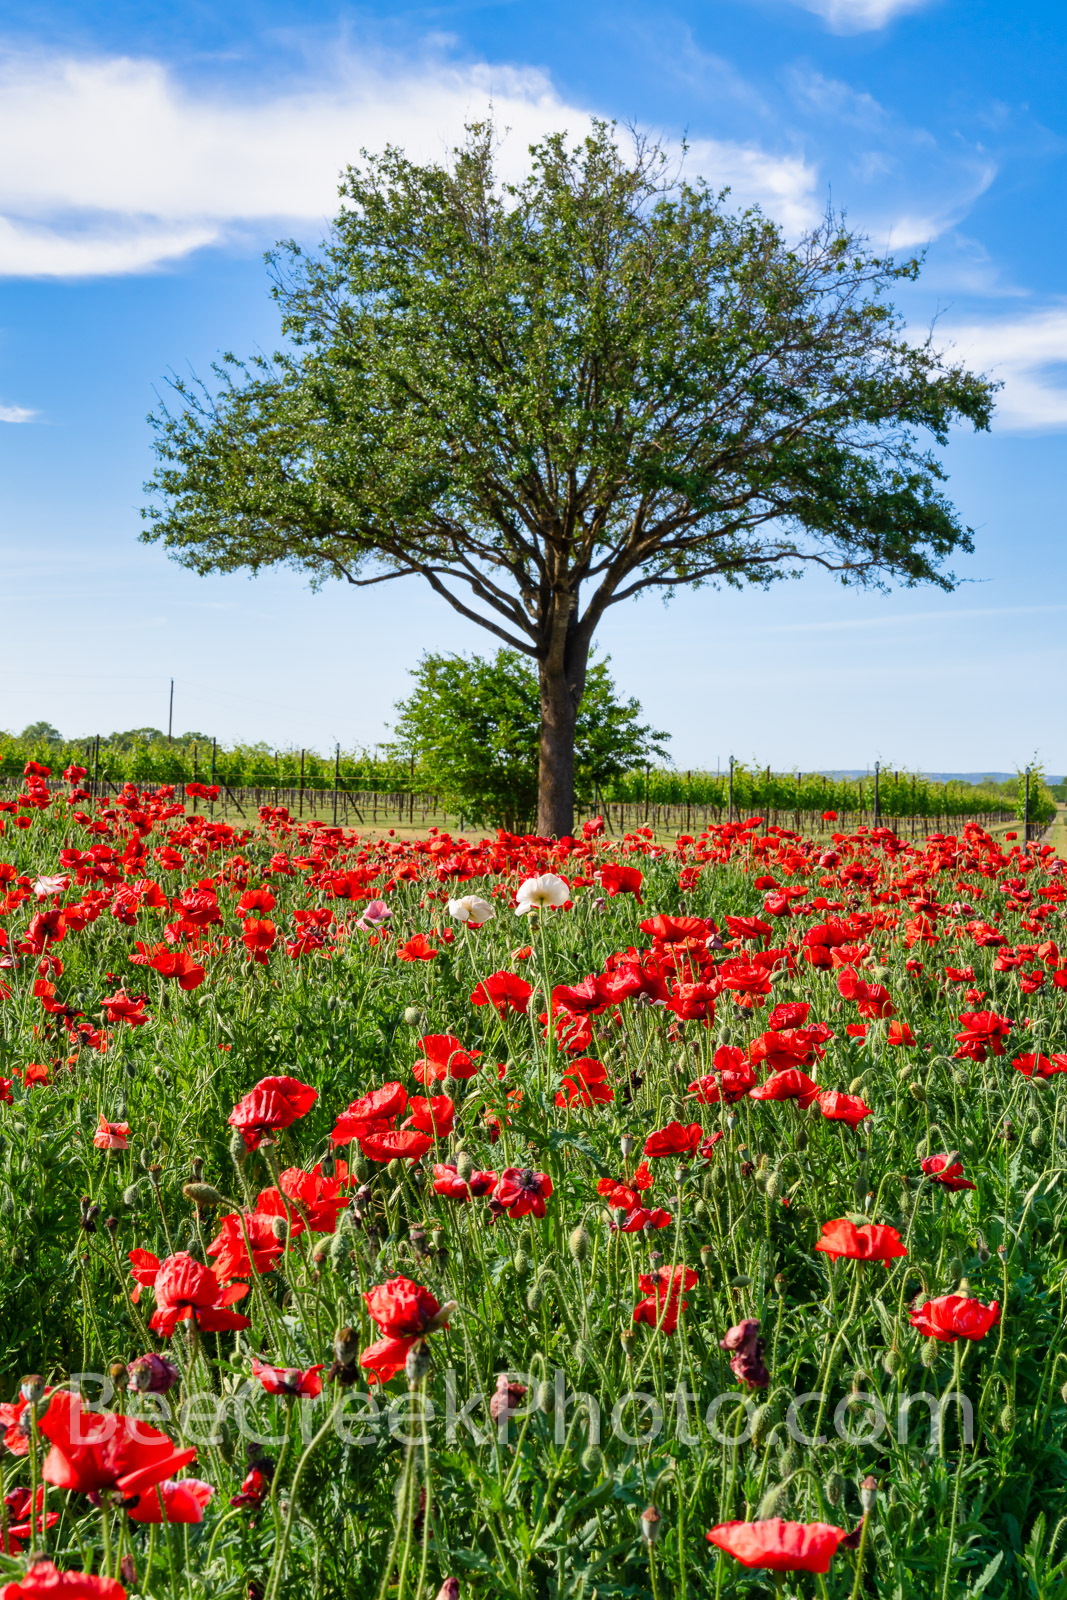 Red Corn Poppies Vertical -  A lovely tree and a field of red poppies with a couple of white and pink poppies with a blue sky...